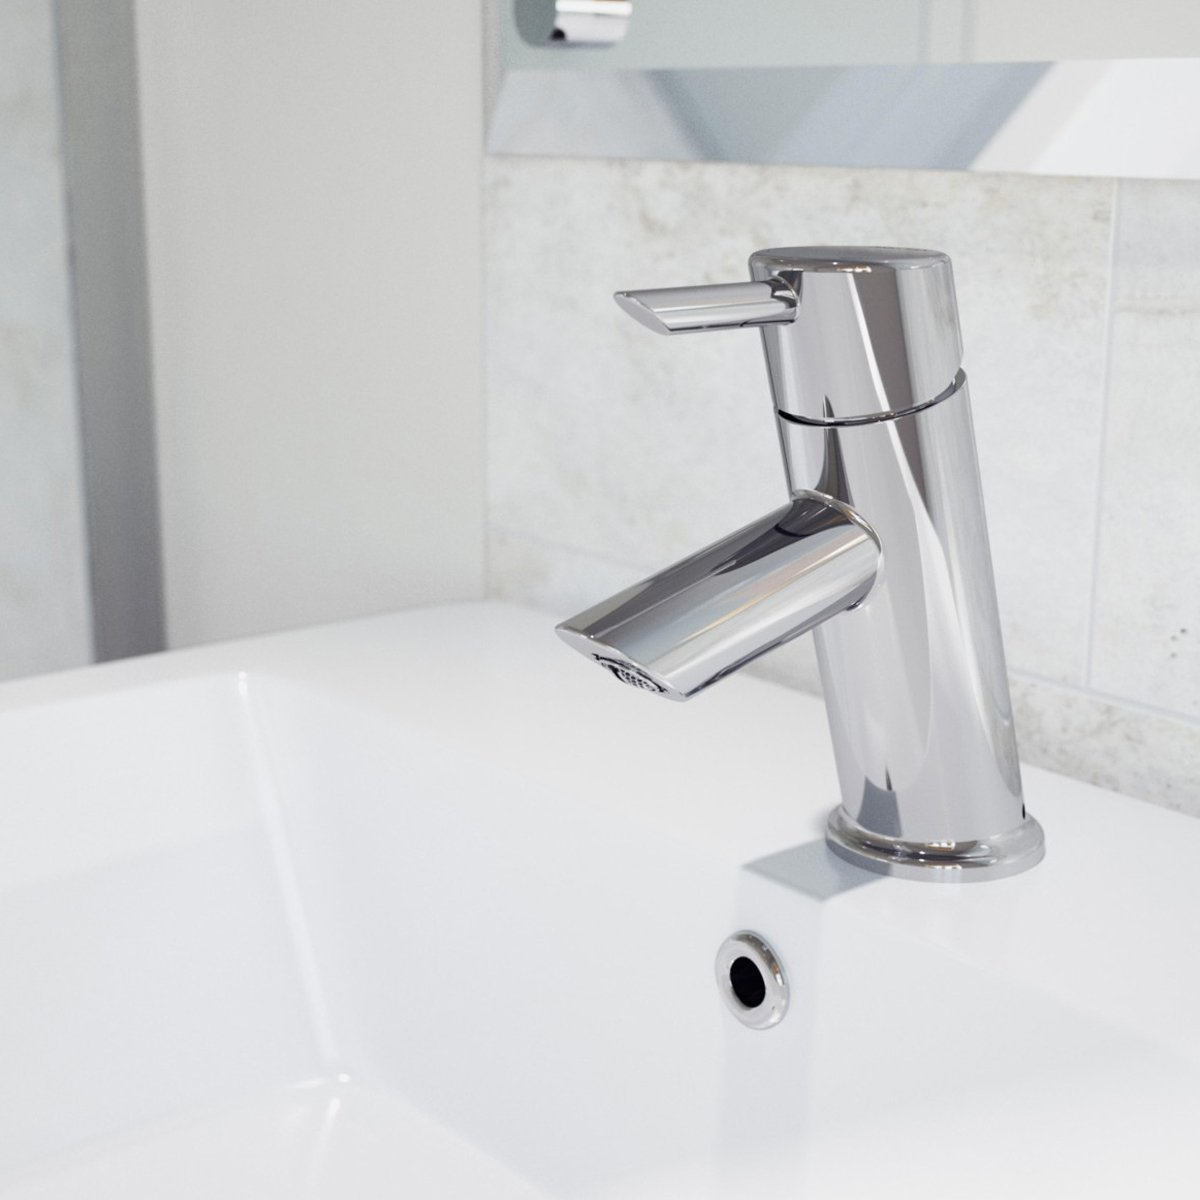 Bristan Acute Basin Mixer Tap without Waste - Chrome-1